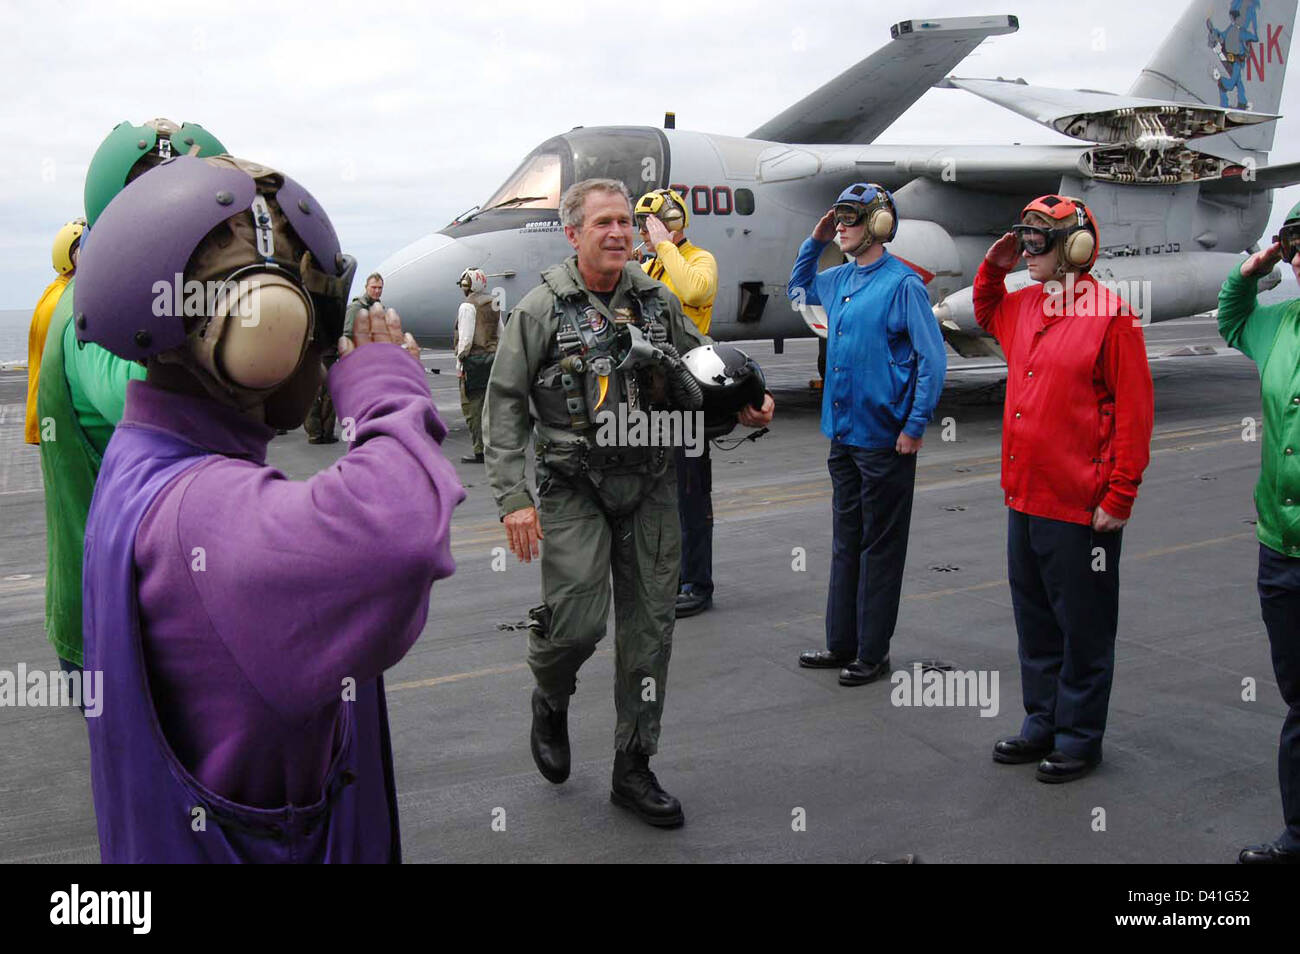 President George W. Bush passes through the 'side boys' after a successful trap aboard the USS Abraham Lincoln - Stock Image